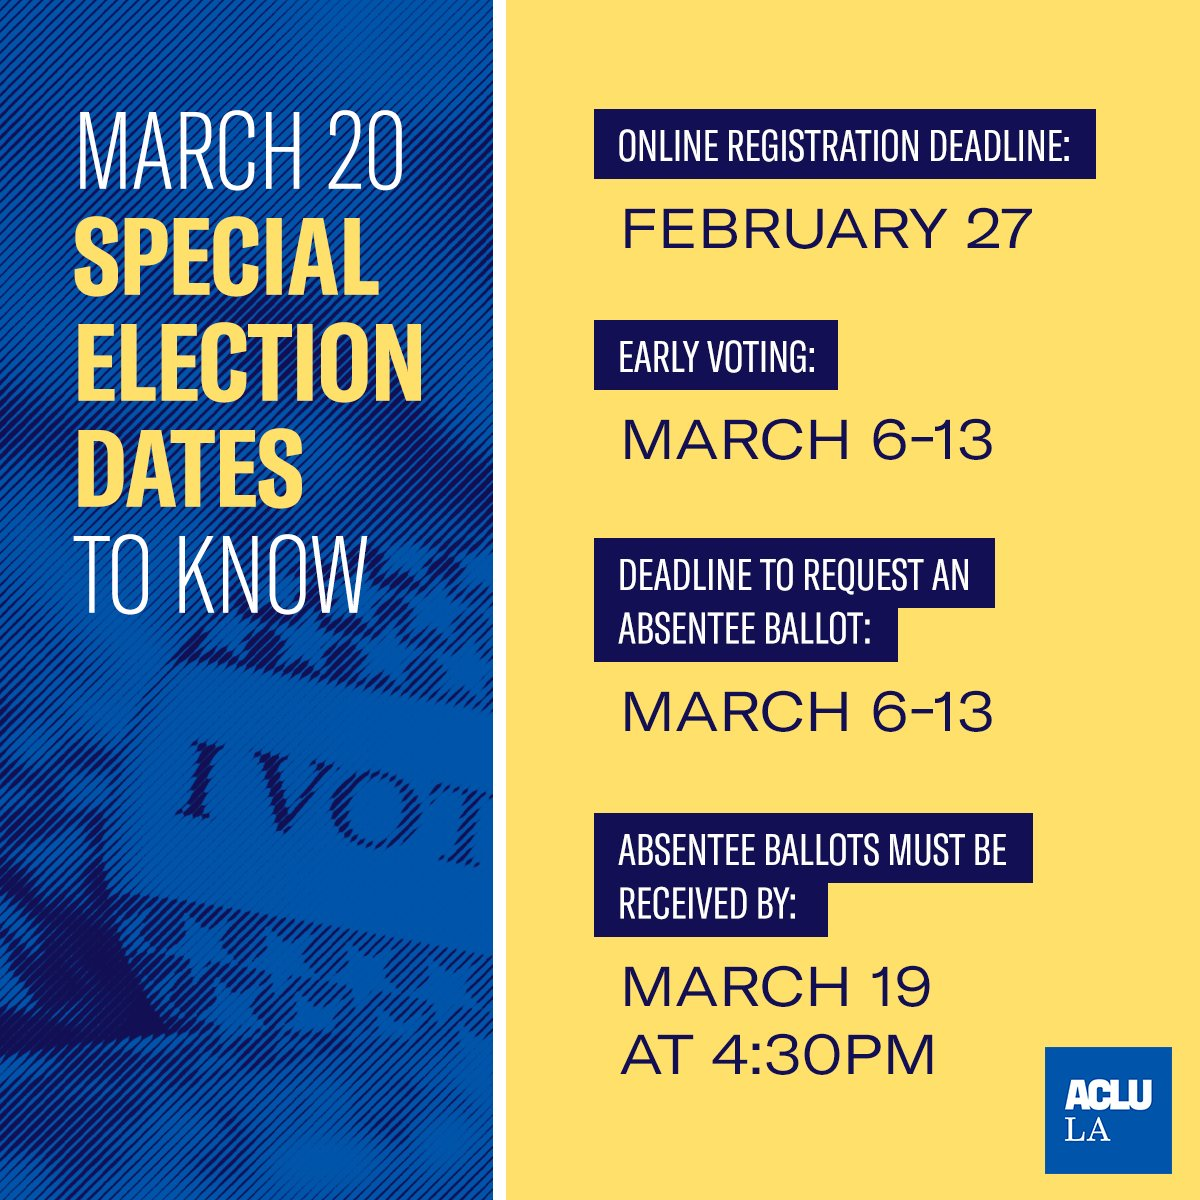 🚨 Voter deadline alert >> the online registration deadline for the March 20 special election is TOMORROW, 2/27!  Check your registration status and get ready to vote like your rights depend on it >>  #GeauxVote